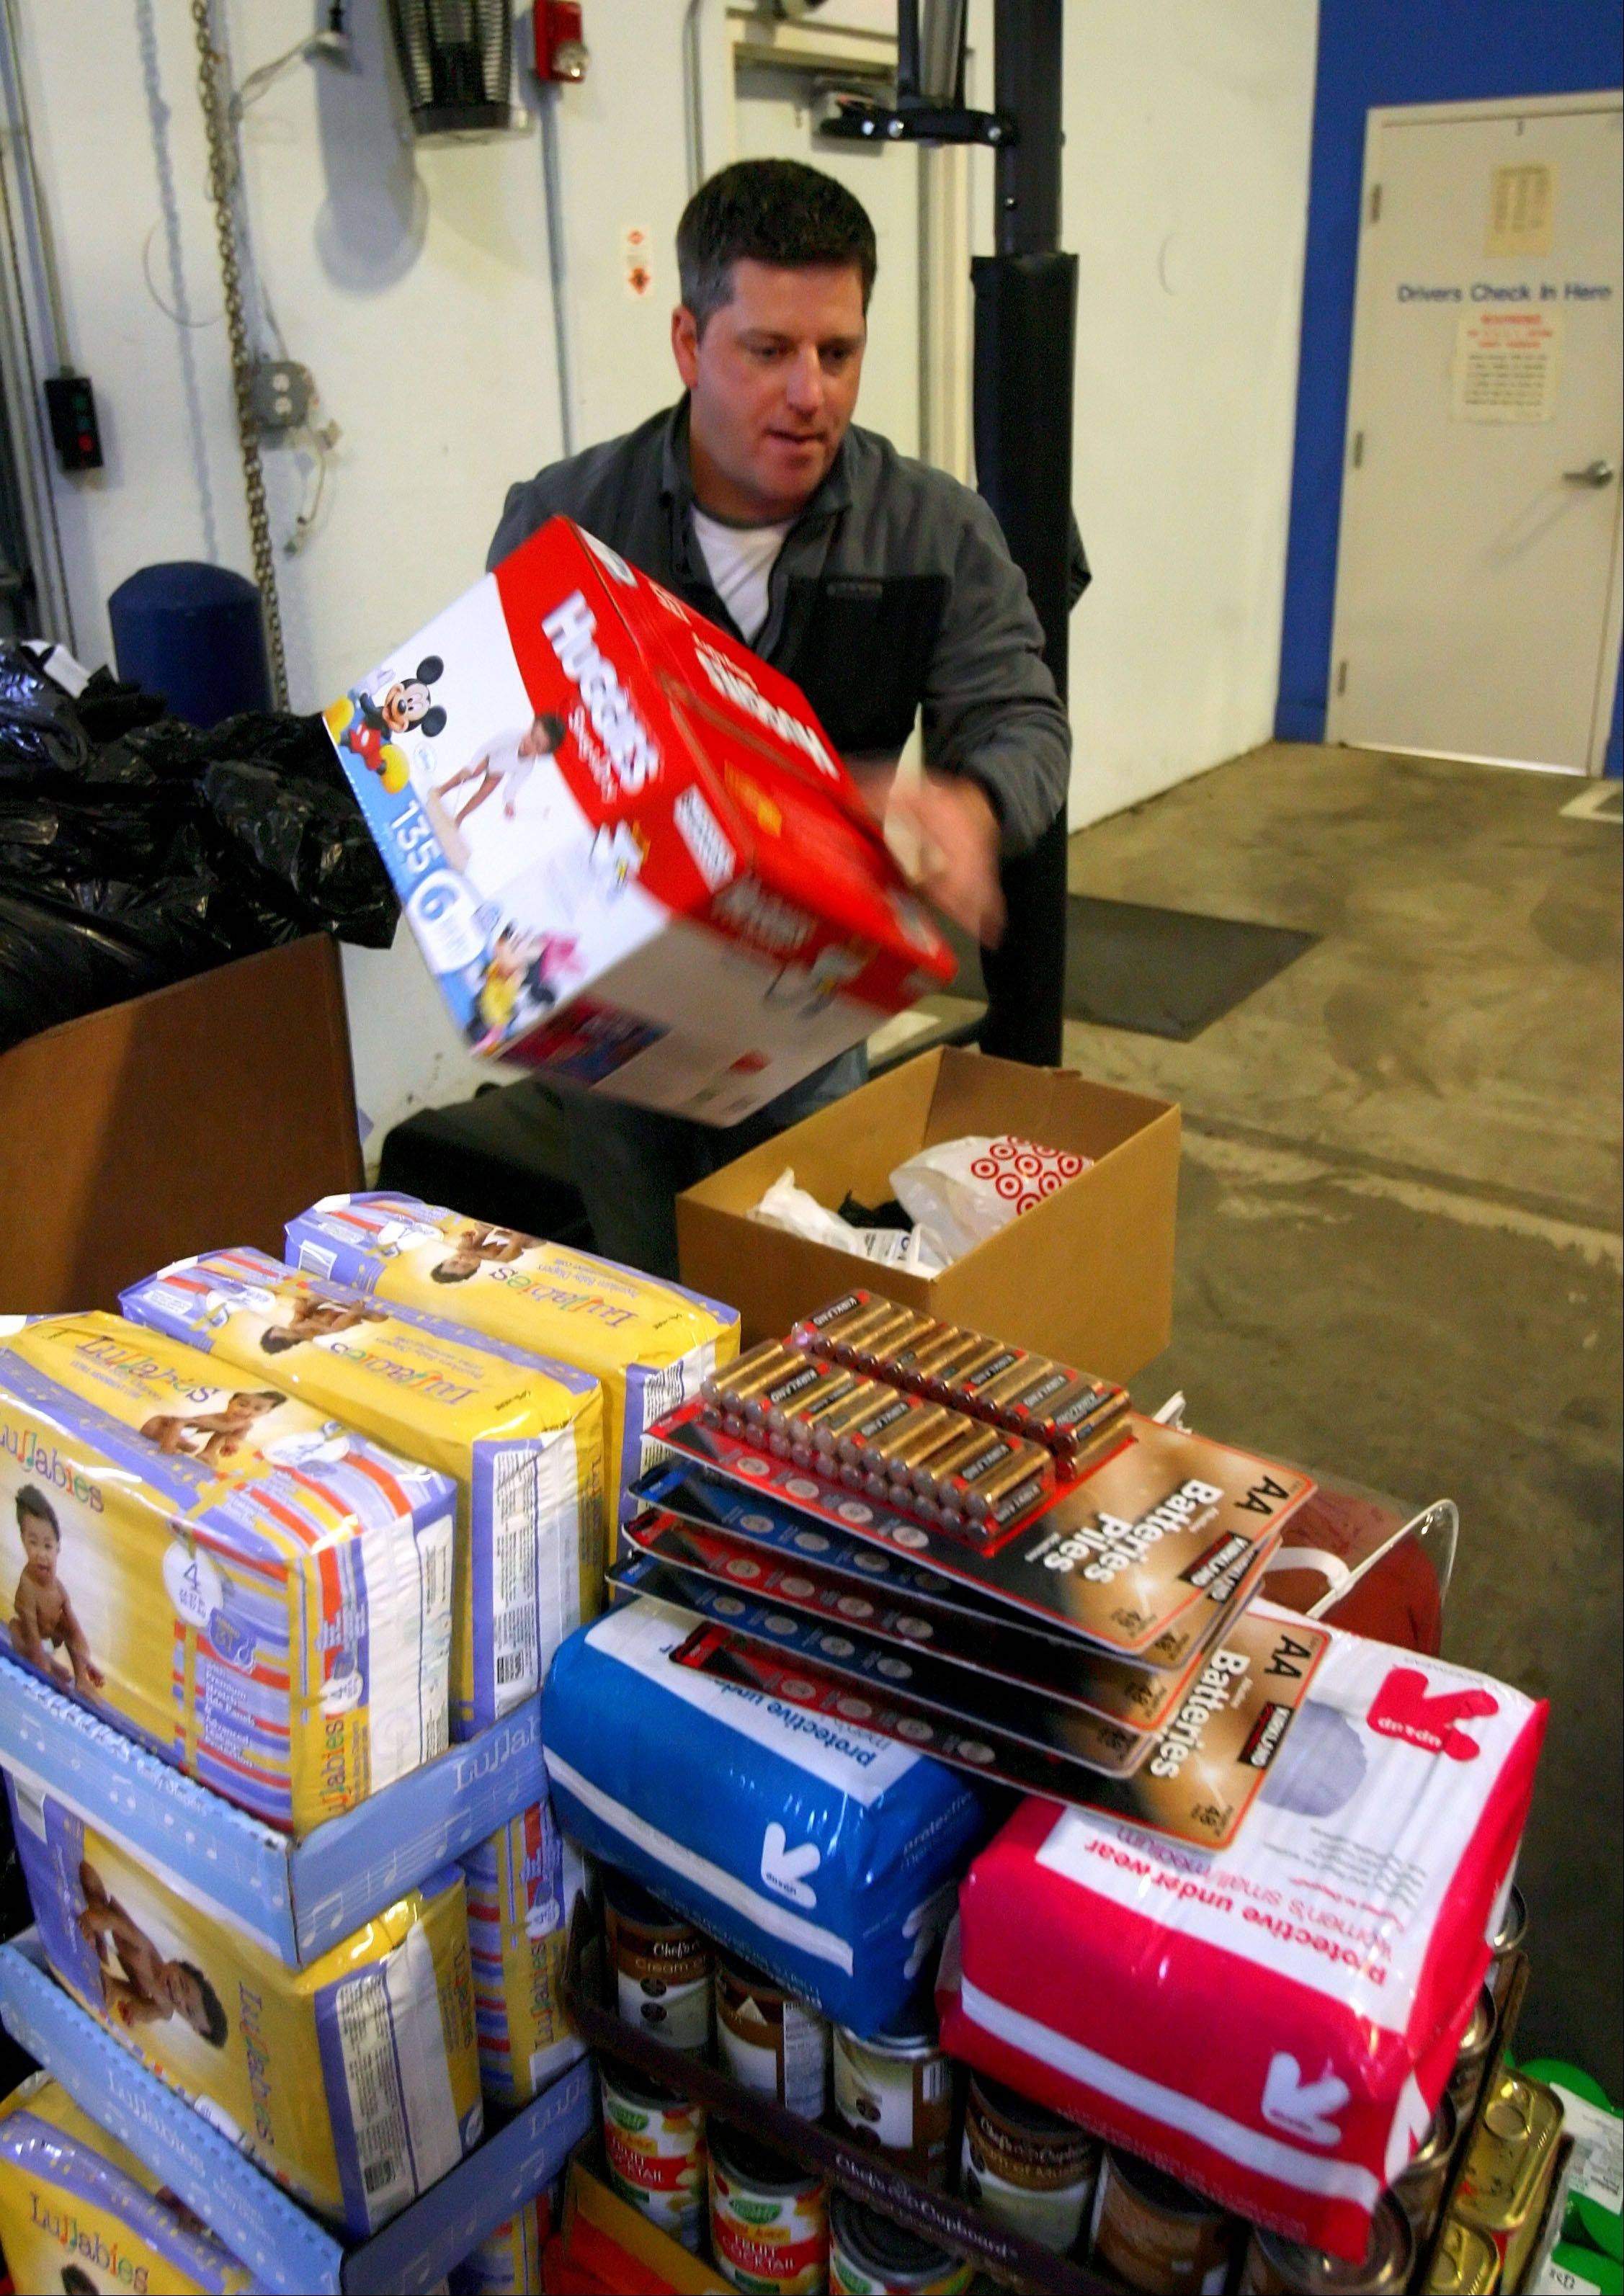 Warehouse manager Dave Rohr stacks donated items at New Age Transportation. The Lake Zurich company is collecting flashlights batteries, diapers and other non-perishable goods for the Hurricane Sandy relief effort in New Jersey. Donated items must be new and can be dropped off at the facility at 1881 Rose Road during normal business hours.